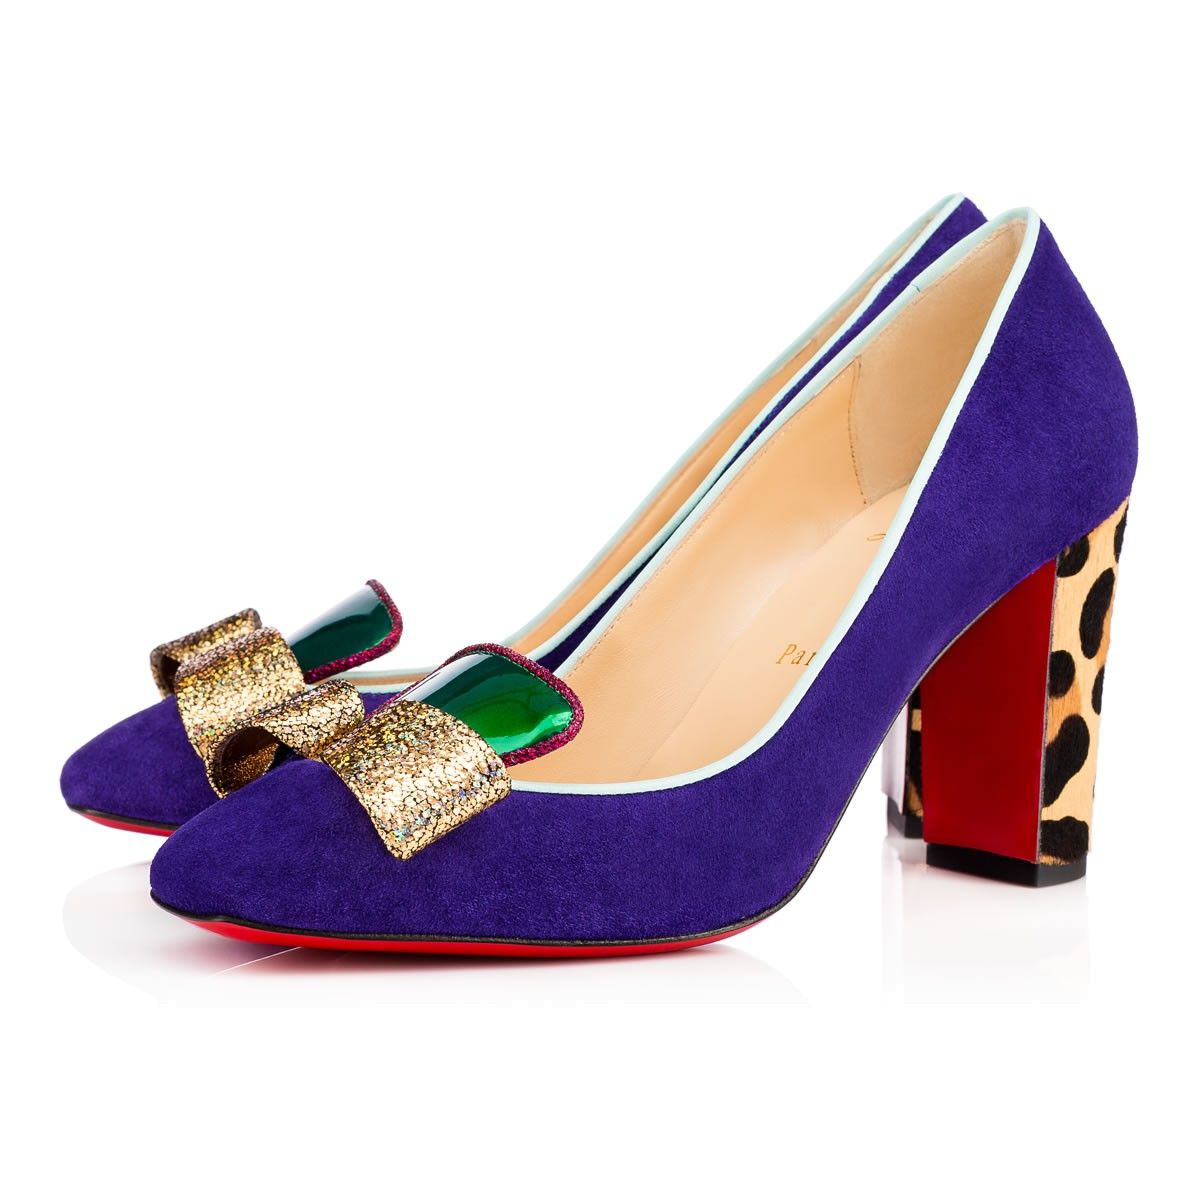 Christian Louboutin United States Official Online Boutique - Lagoyata 85  Version Encre Suede available online. Discover more Women Shoes by  Christian ...